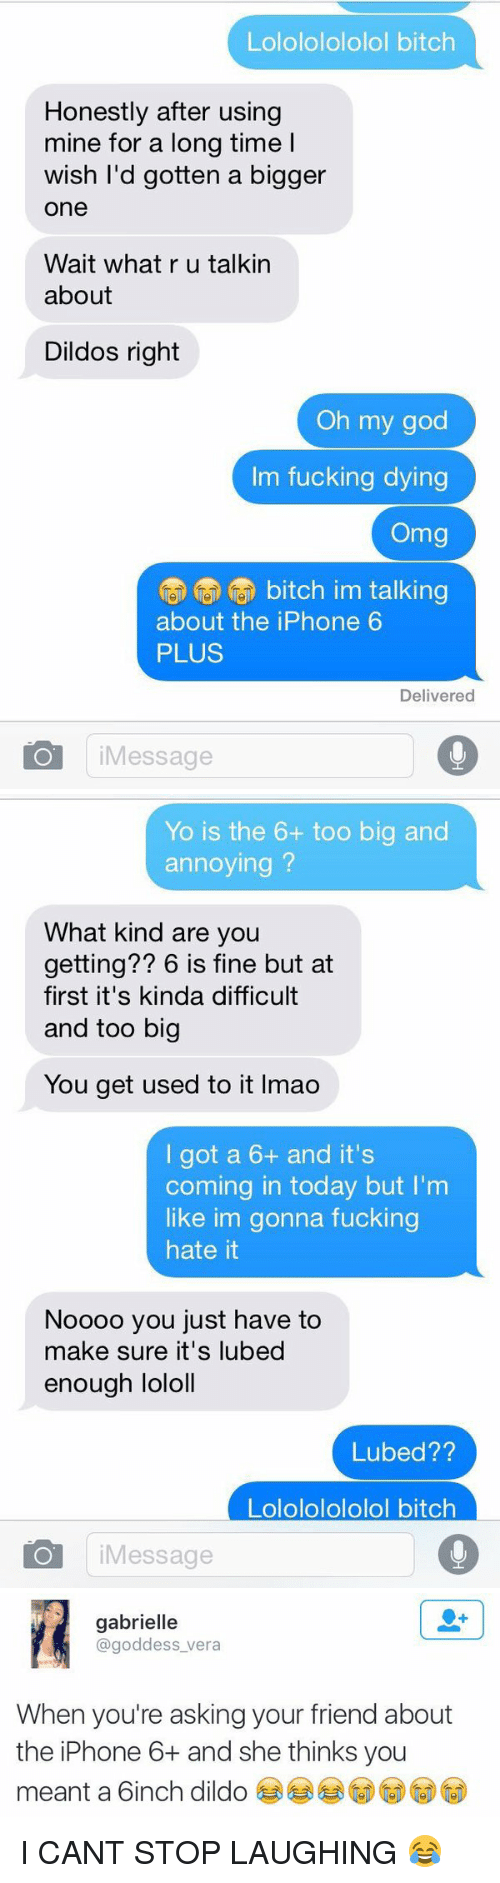 Iphone 6 Plus: Lolololololol bitch  Honestly after using  mine for a long time l  wish I'd gotten a bigger  One  Wait what r u talkin  about  Dildos right  Oh my god  Im fucking dying  Omg  (U bitch im talking  about the iPhone 6  PLUS  Delivered  Message   Yo is the 6+ too big and  annoying  What kind are you  getting?? 6 is fine but at  first it's kinda difficult  and too big  You get used to it lmao  I got a 6+ and it's  coming in today but I'm  like im gonna fucking  hate it  Noooo you just have to  make sure it's lubed  enough lololl  Lubed??  Lolololololol bitch  IO Message   gabrielle  @goddess vera  When you're asking your friend about  the iPhone 6 and she thinks you  meant a 6inch dildo I CANT STOP LAUGHING 😂